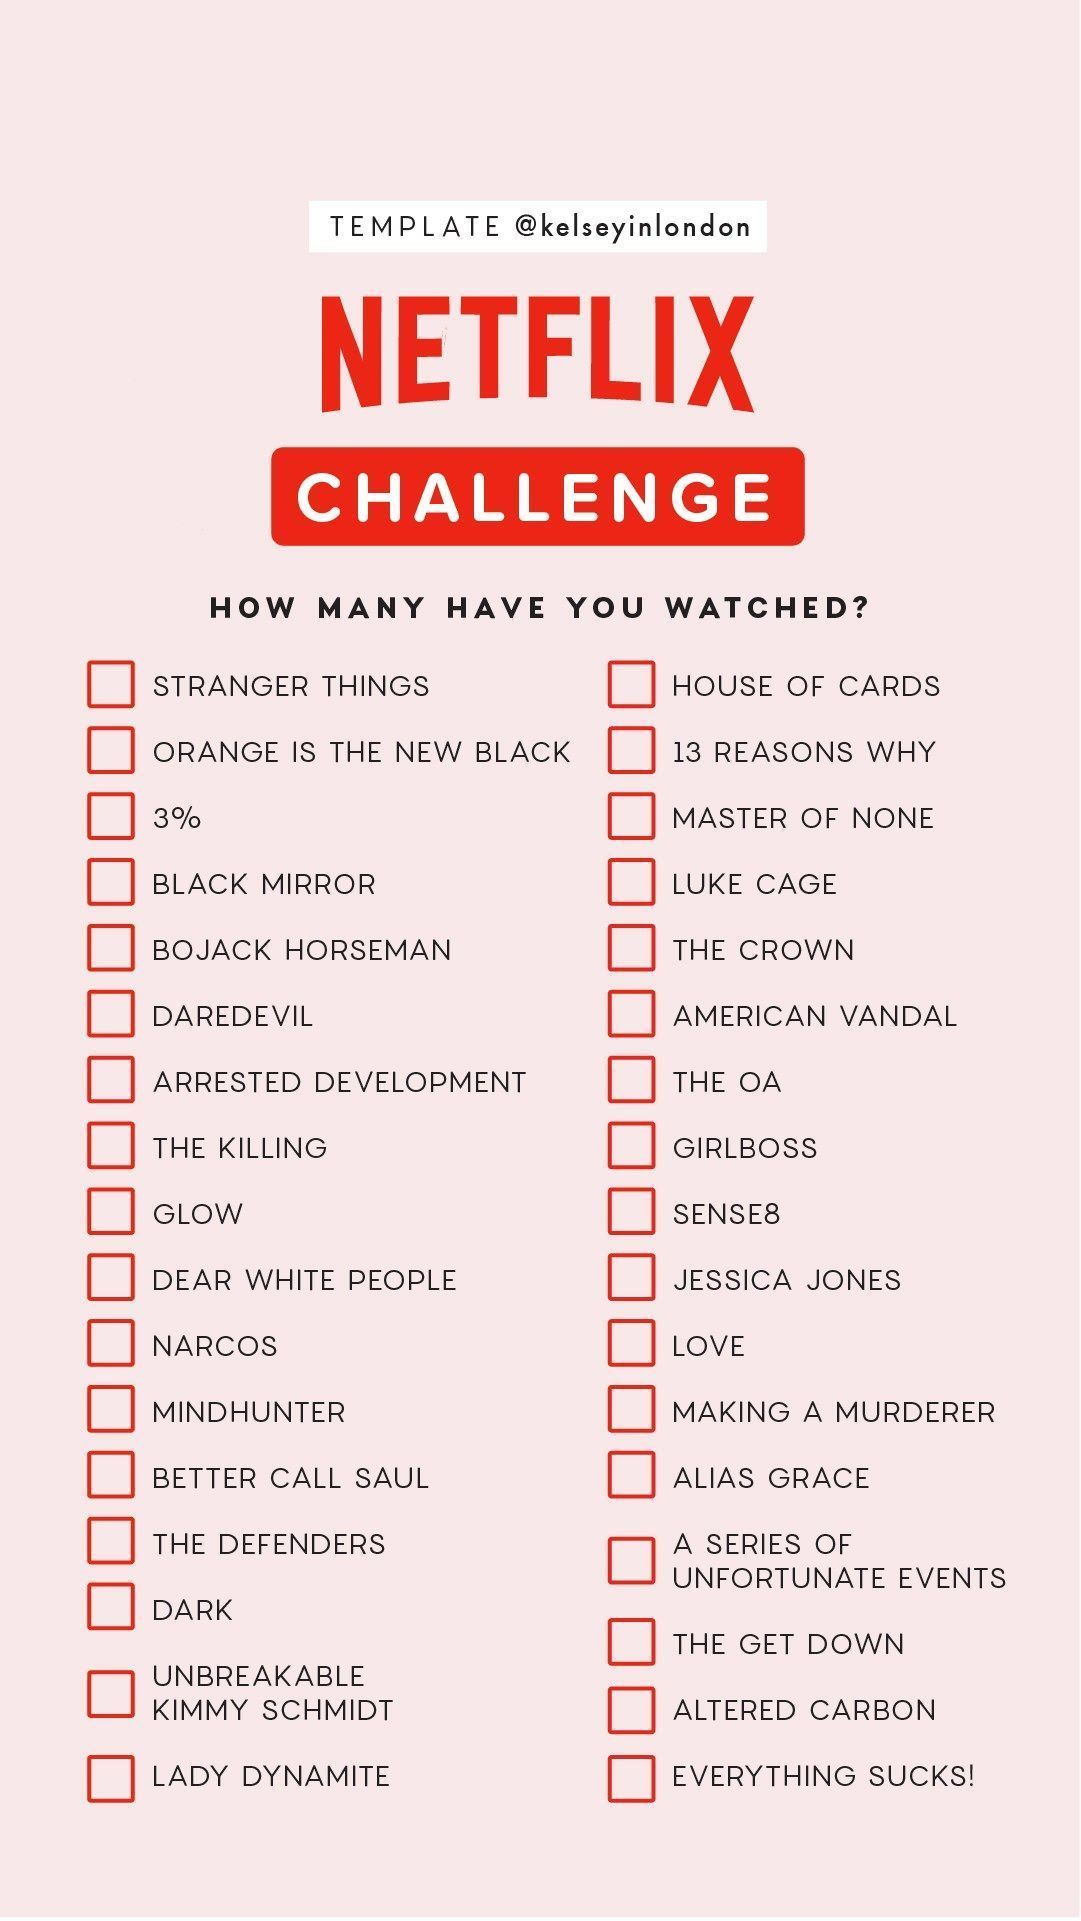 TV   Kelsey Heinrichs seriesonnetflix Story Template     movies and tv shows is part of Netflix movie list, Movie to watch list, Movies to watch, Netflix movies to watch, Netflix movies, Disney movies list - TV   Kelsey Heinrichs seriesonnetflix Story Template… Film heinrichs kelsey